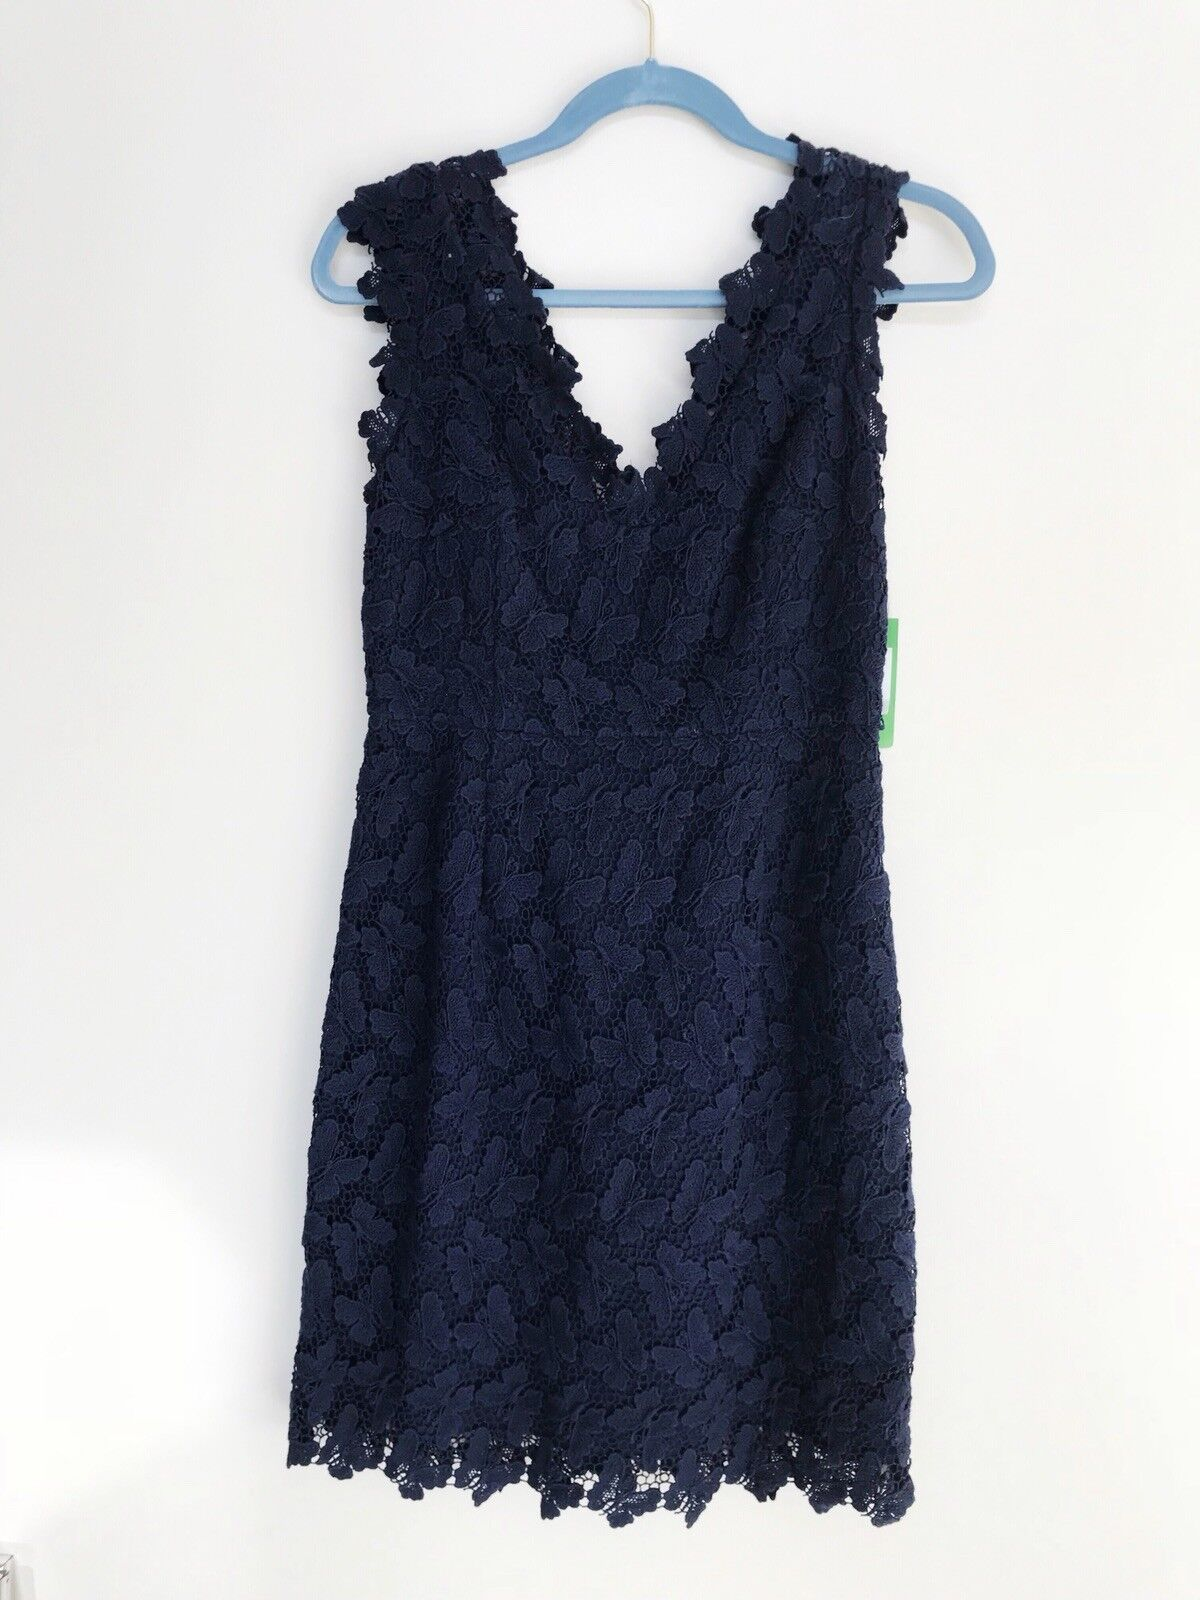 NWT Lilly Pulitzer Reeve Sleeveless Dress Papillon Lace Butterfly True Navy 4